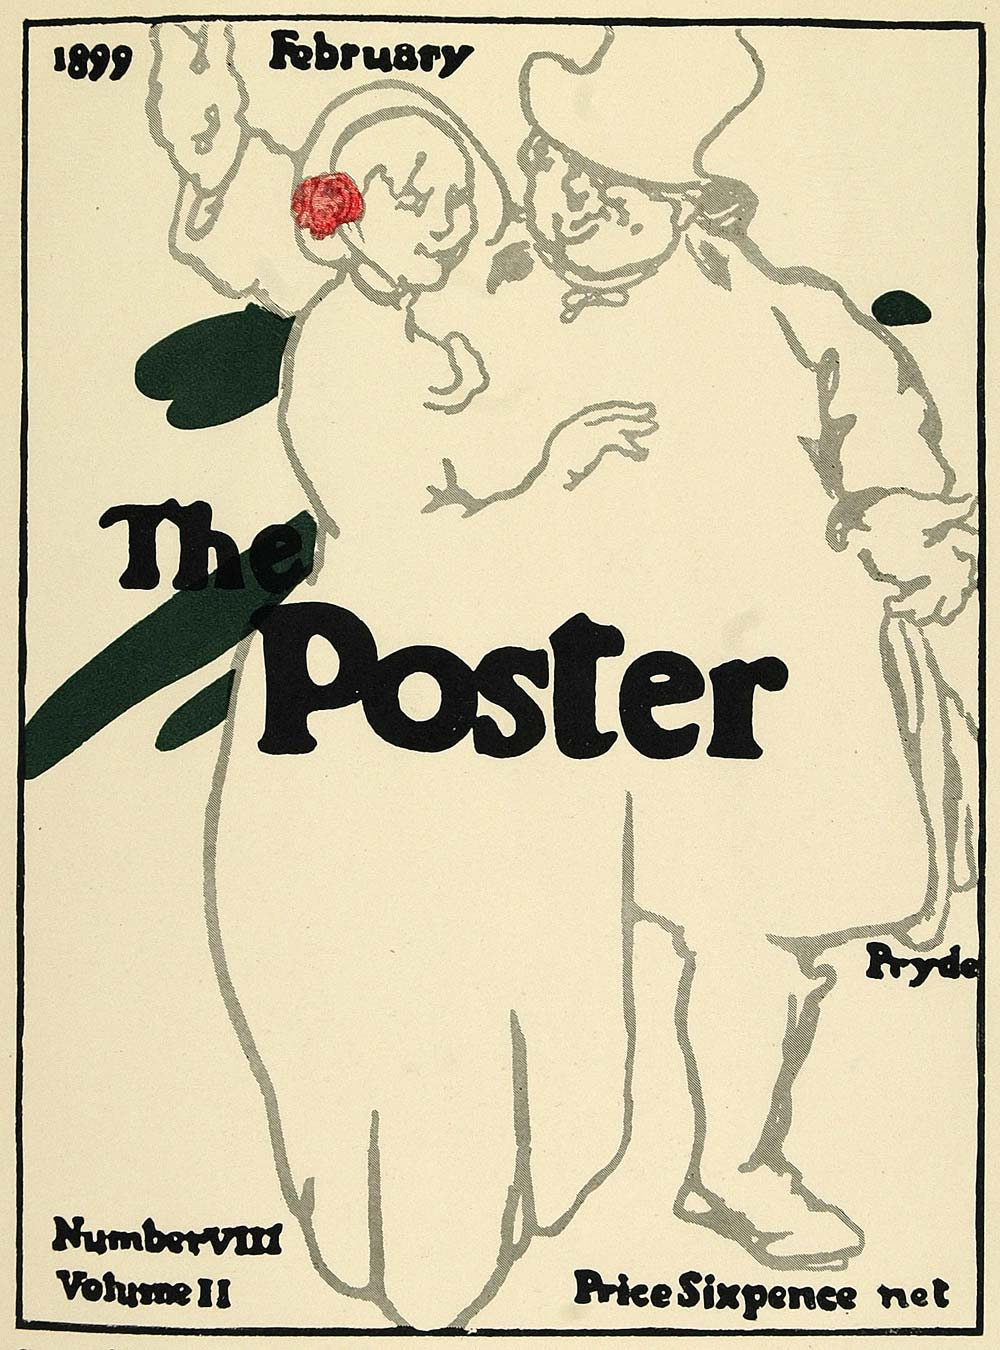 1924 Lithograph James Pryde Mini Poster Art The Poster Cover February 1899